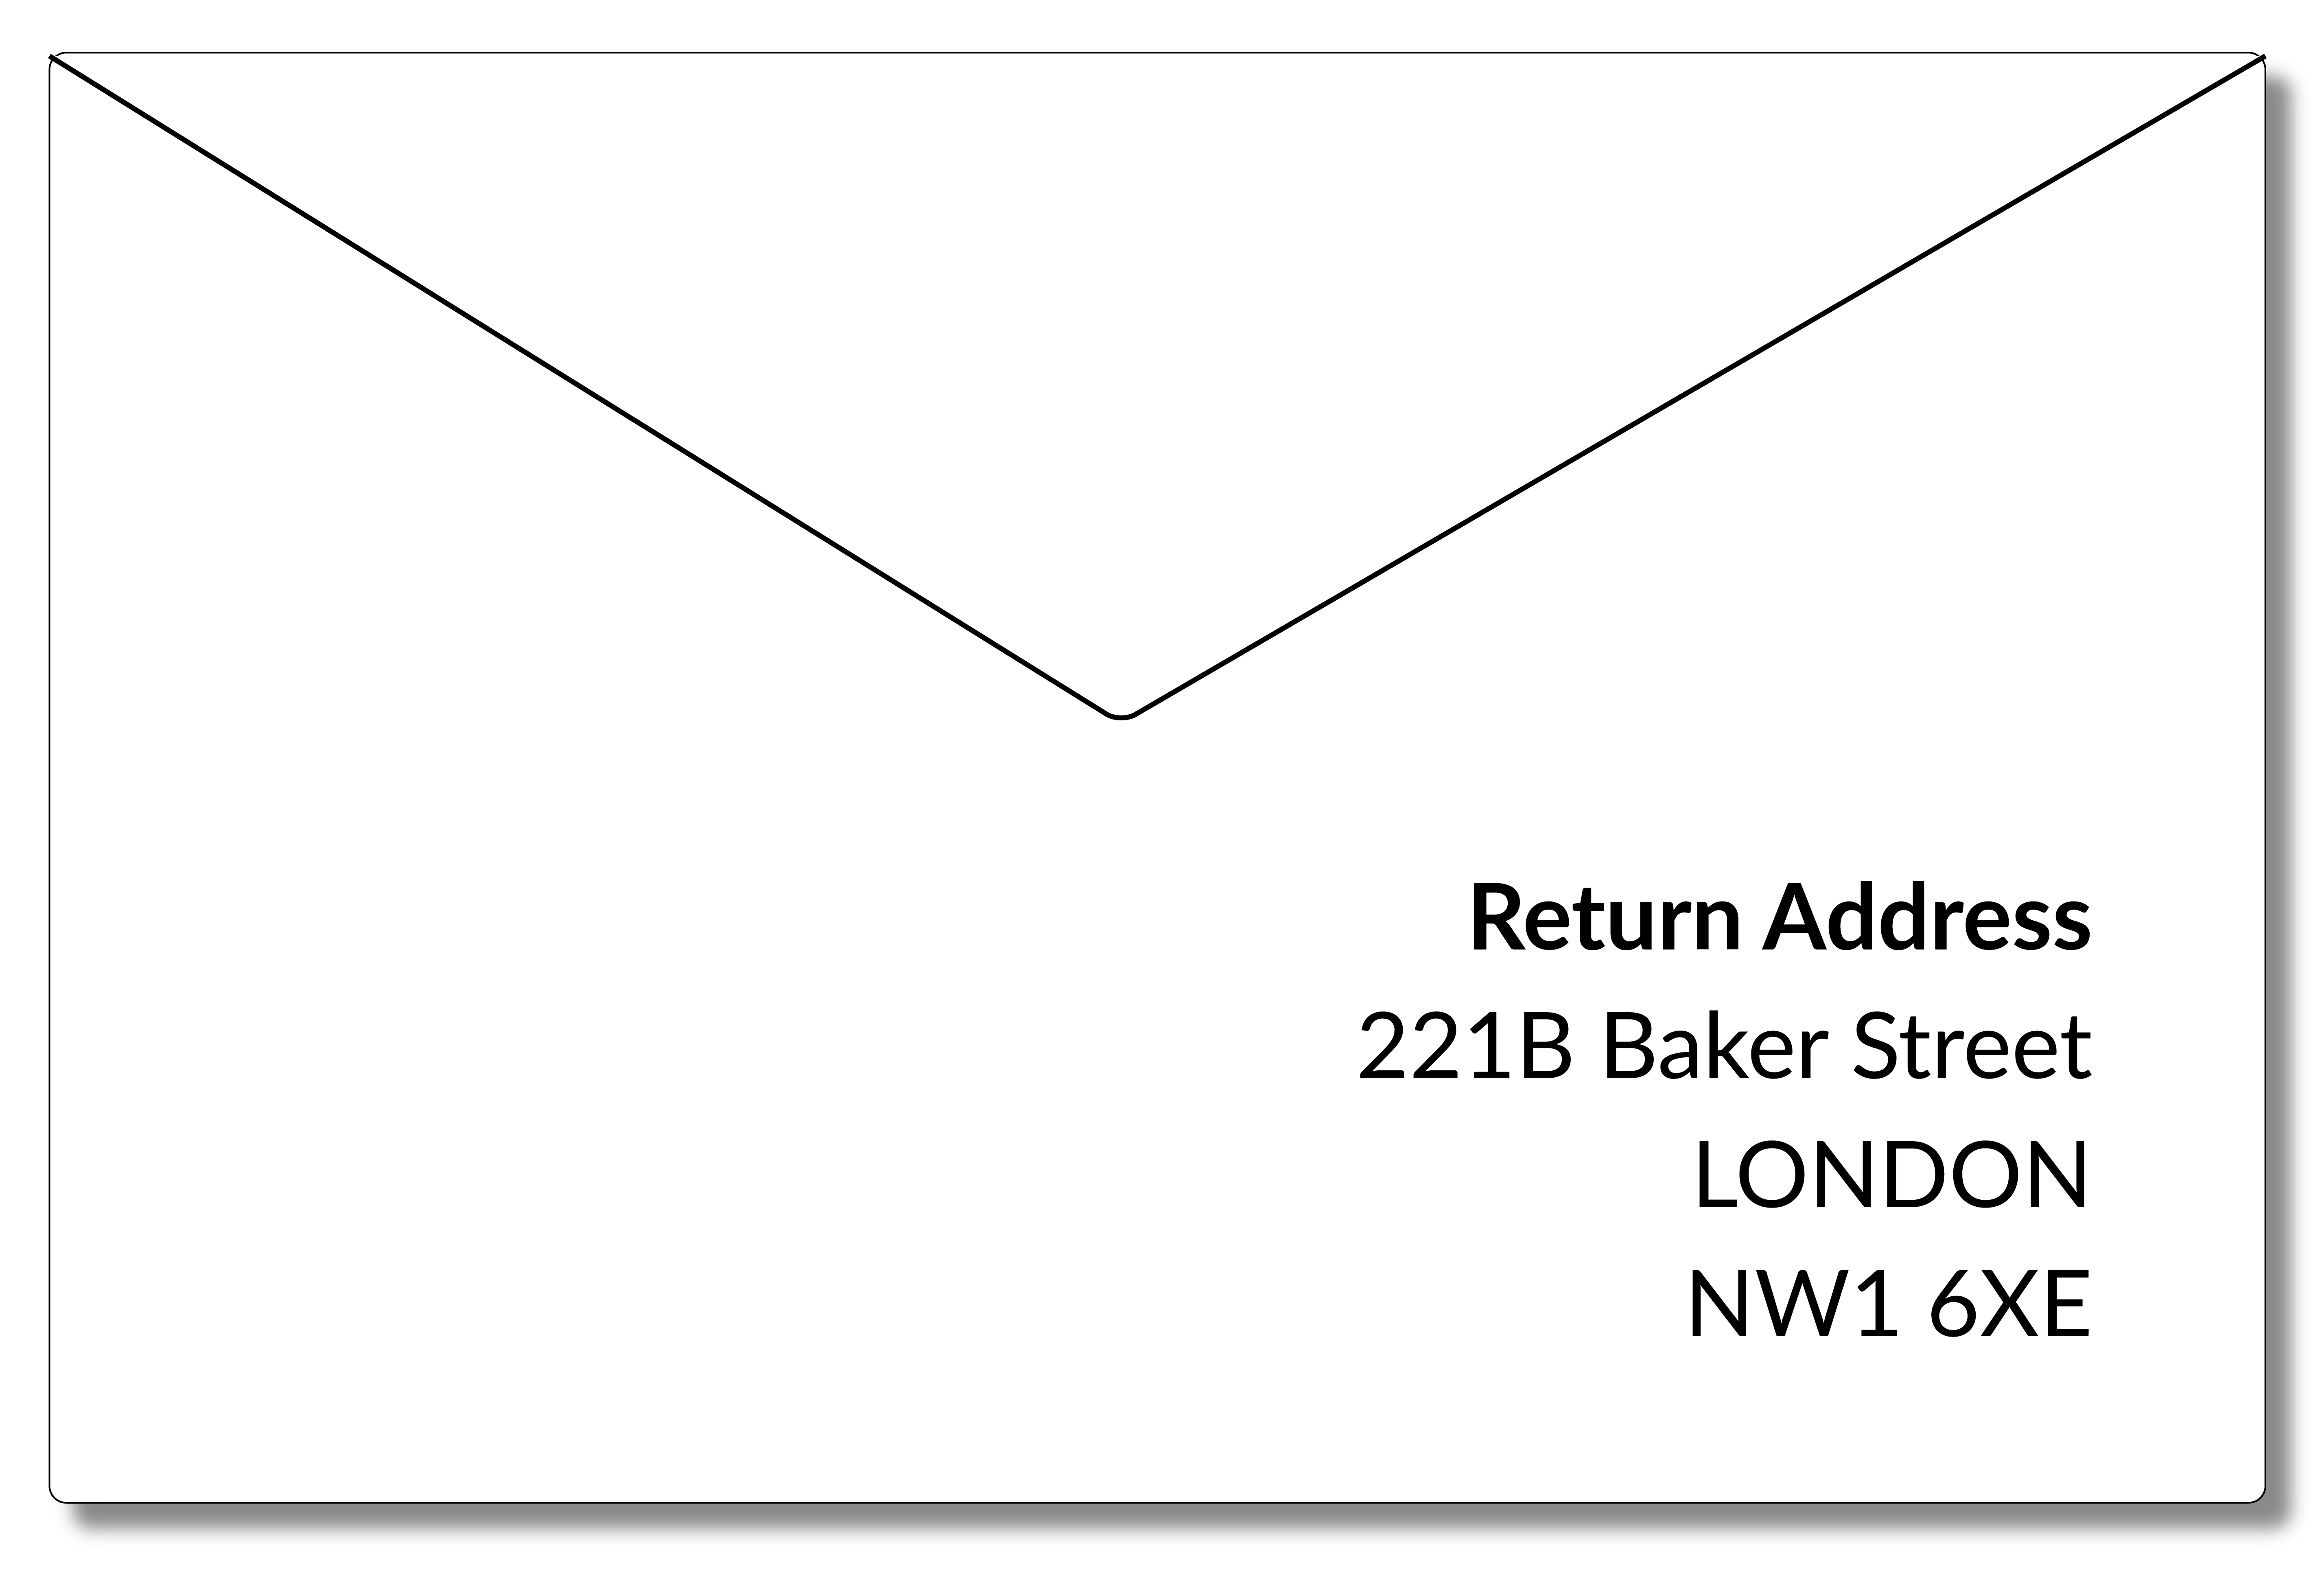 UK Return Address Format